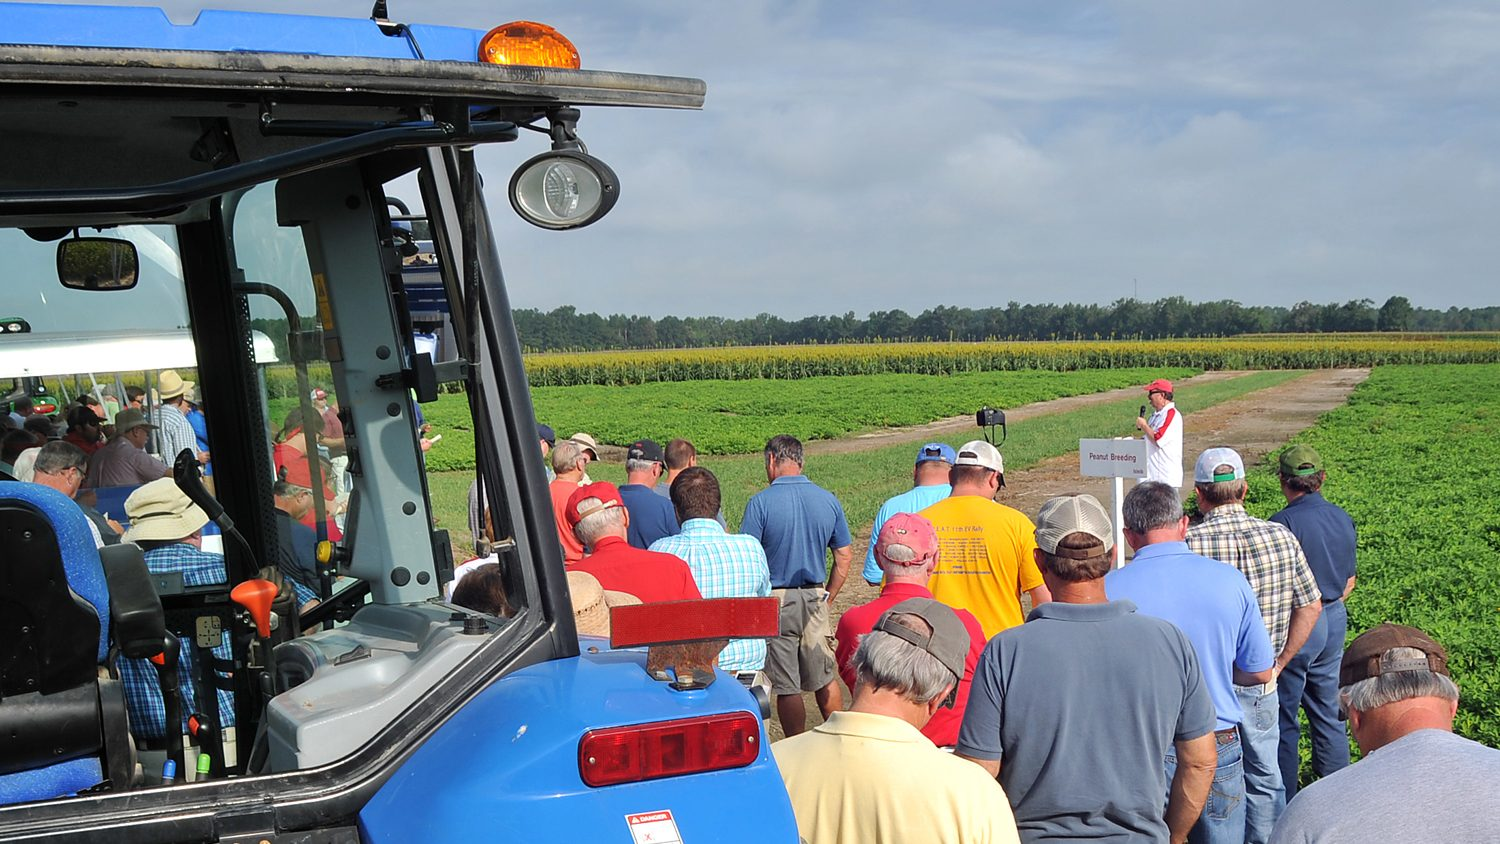 Field Day demonstartion at an NC State Research Station.